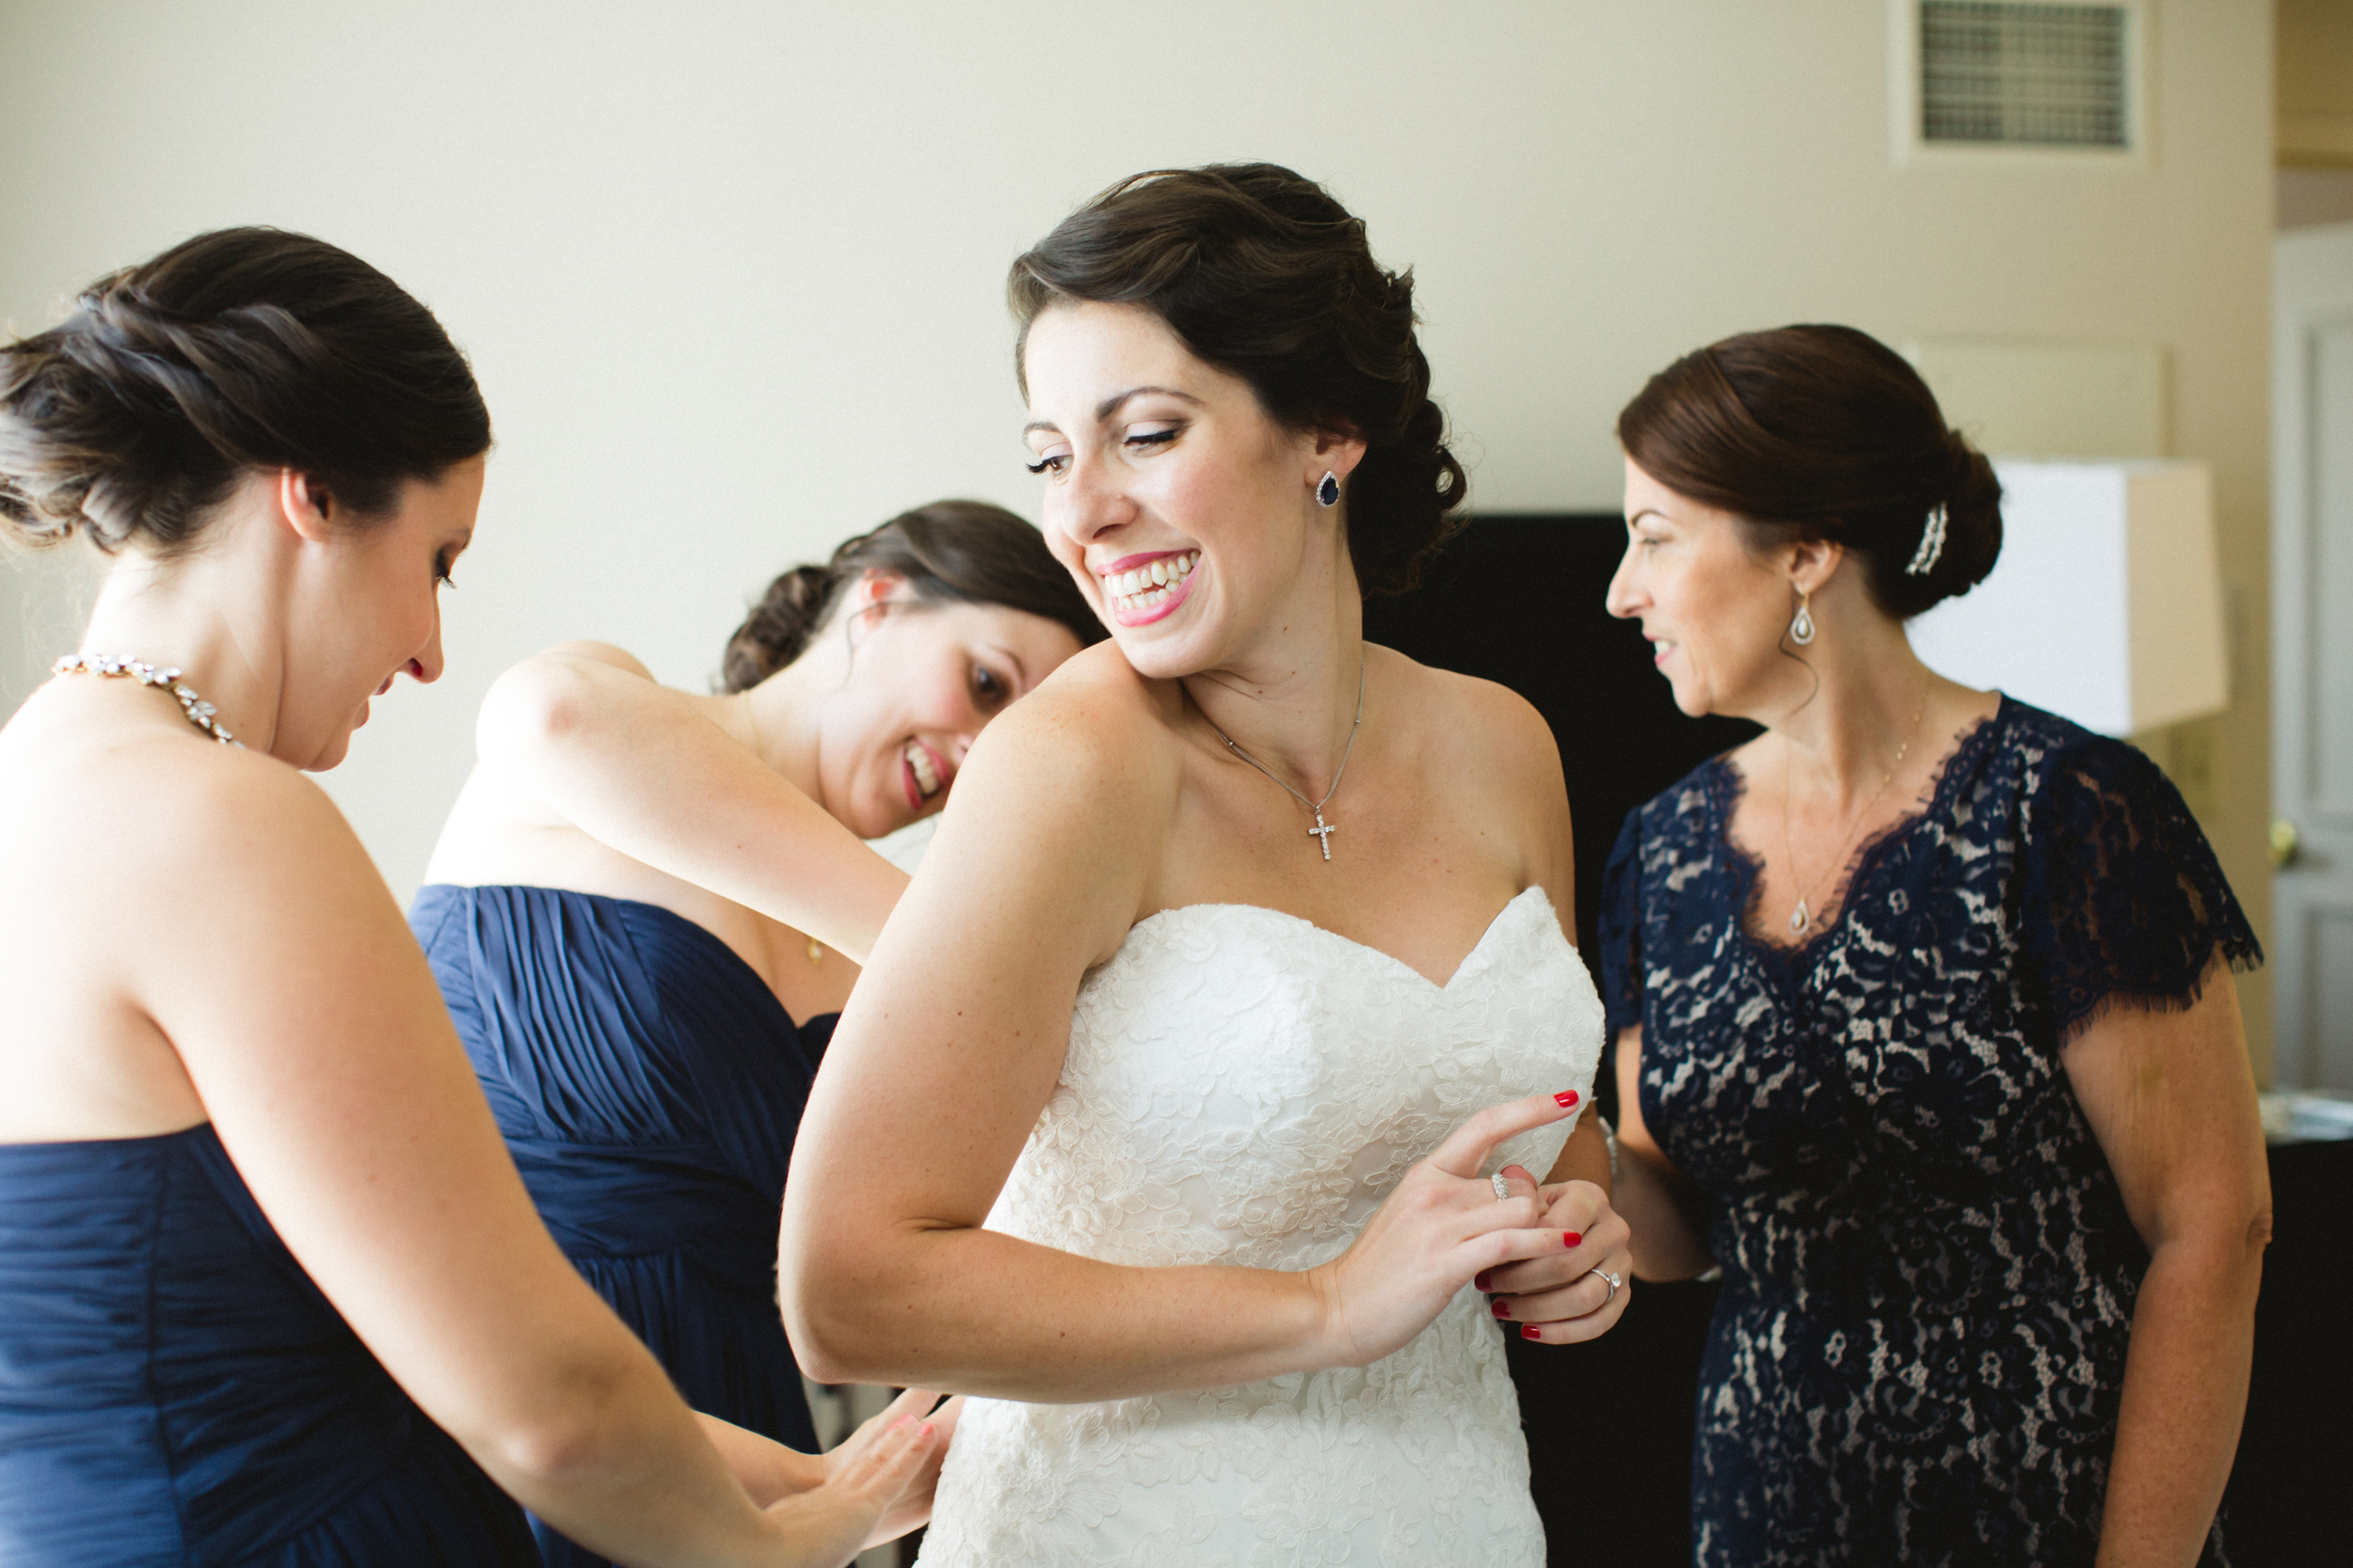 Vness_Photography_Wedding_Photographer_Washington-DC_Fish_Wedding-146.JPG